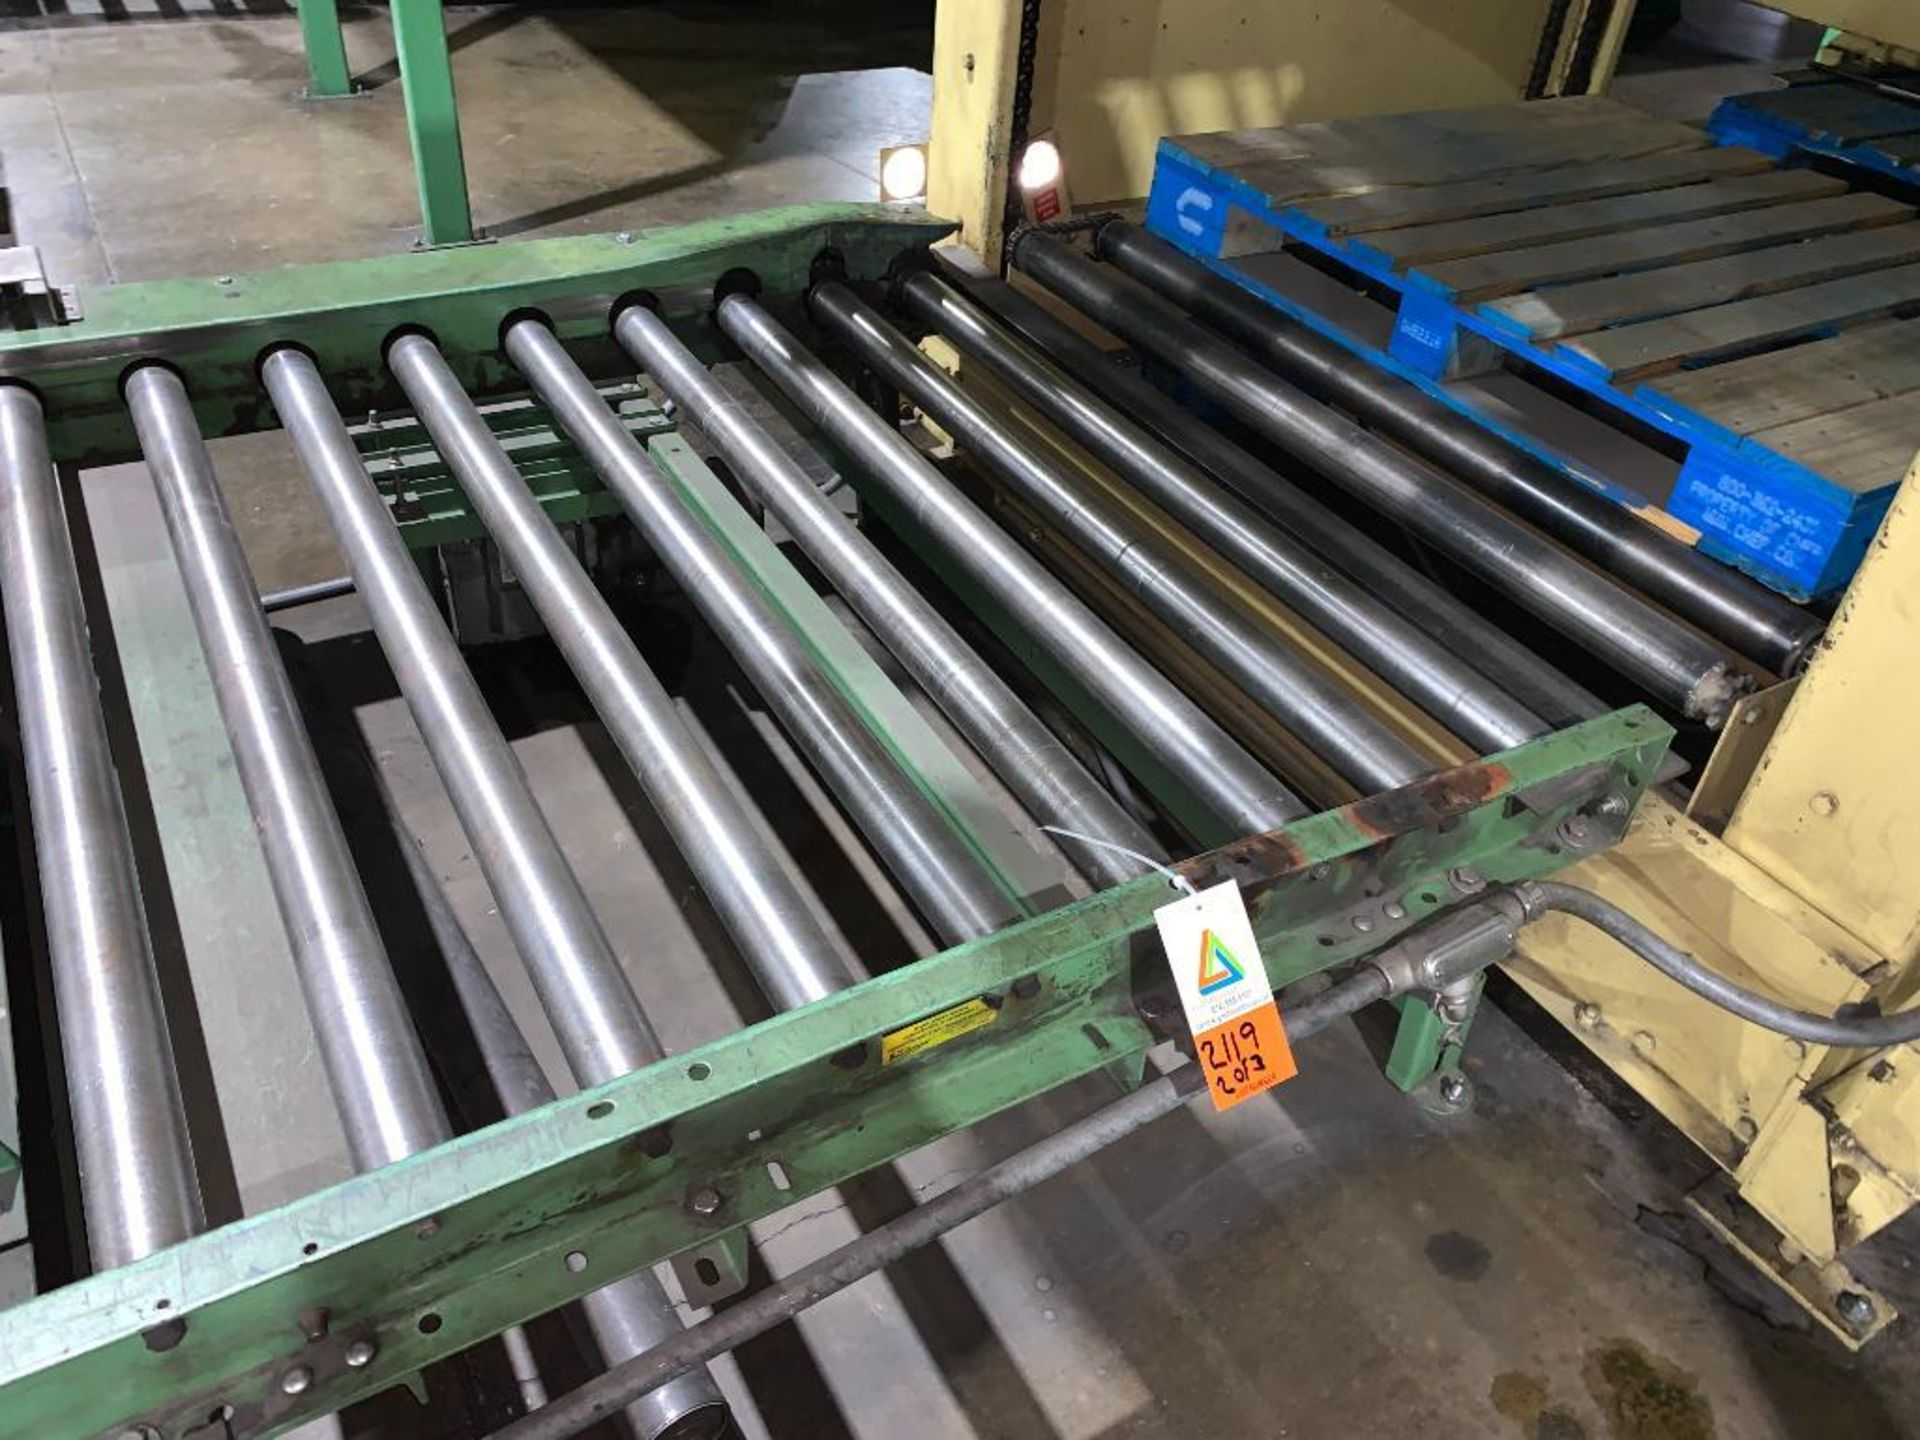 1992 Currie top to bottom palletizer, machine number LSP-5-1177 - Image 34 of 53